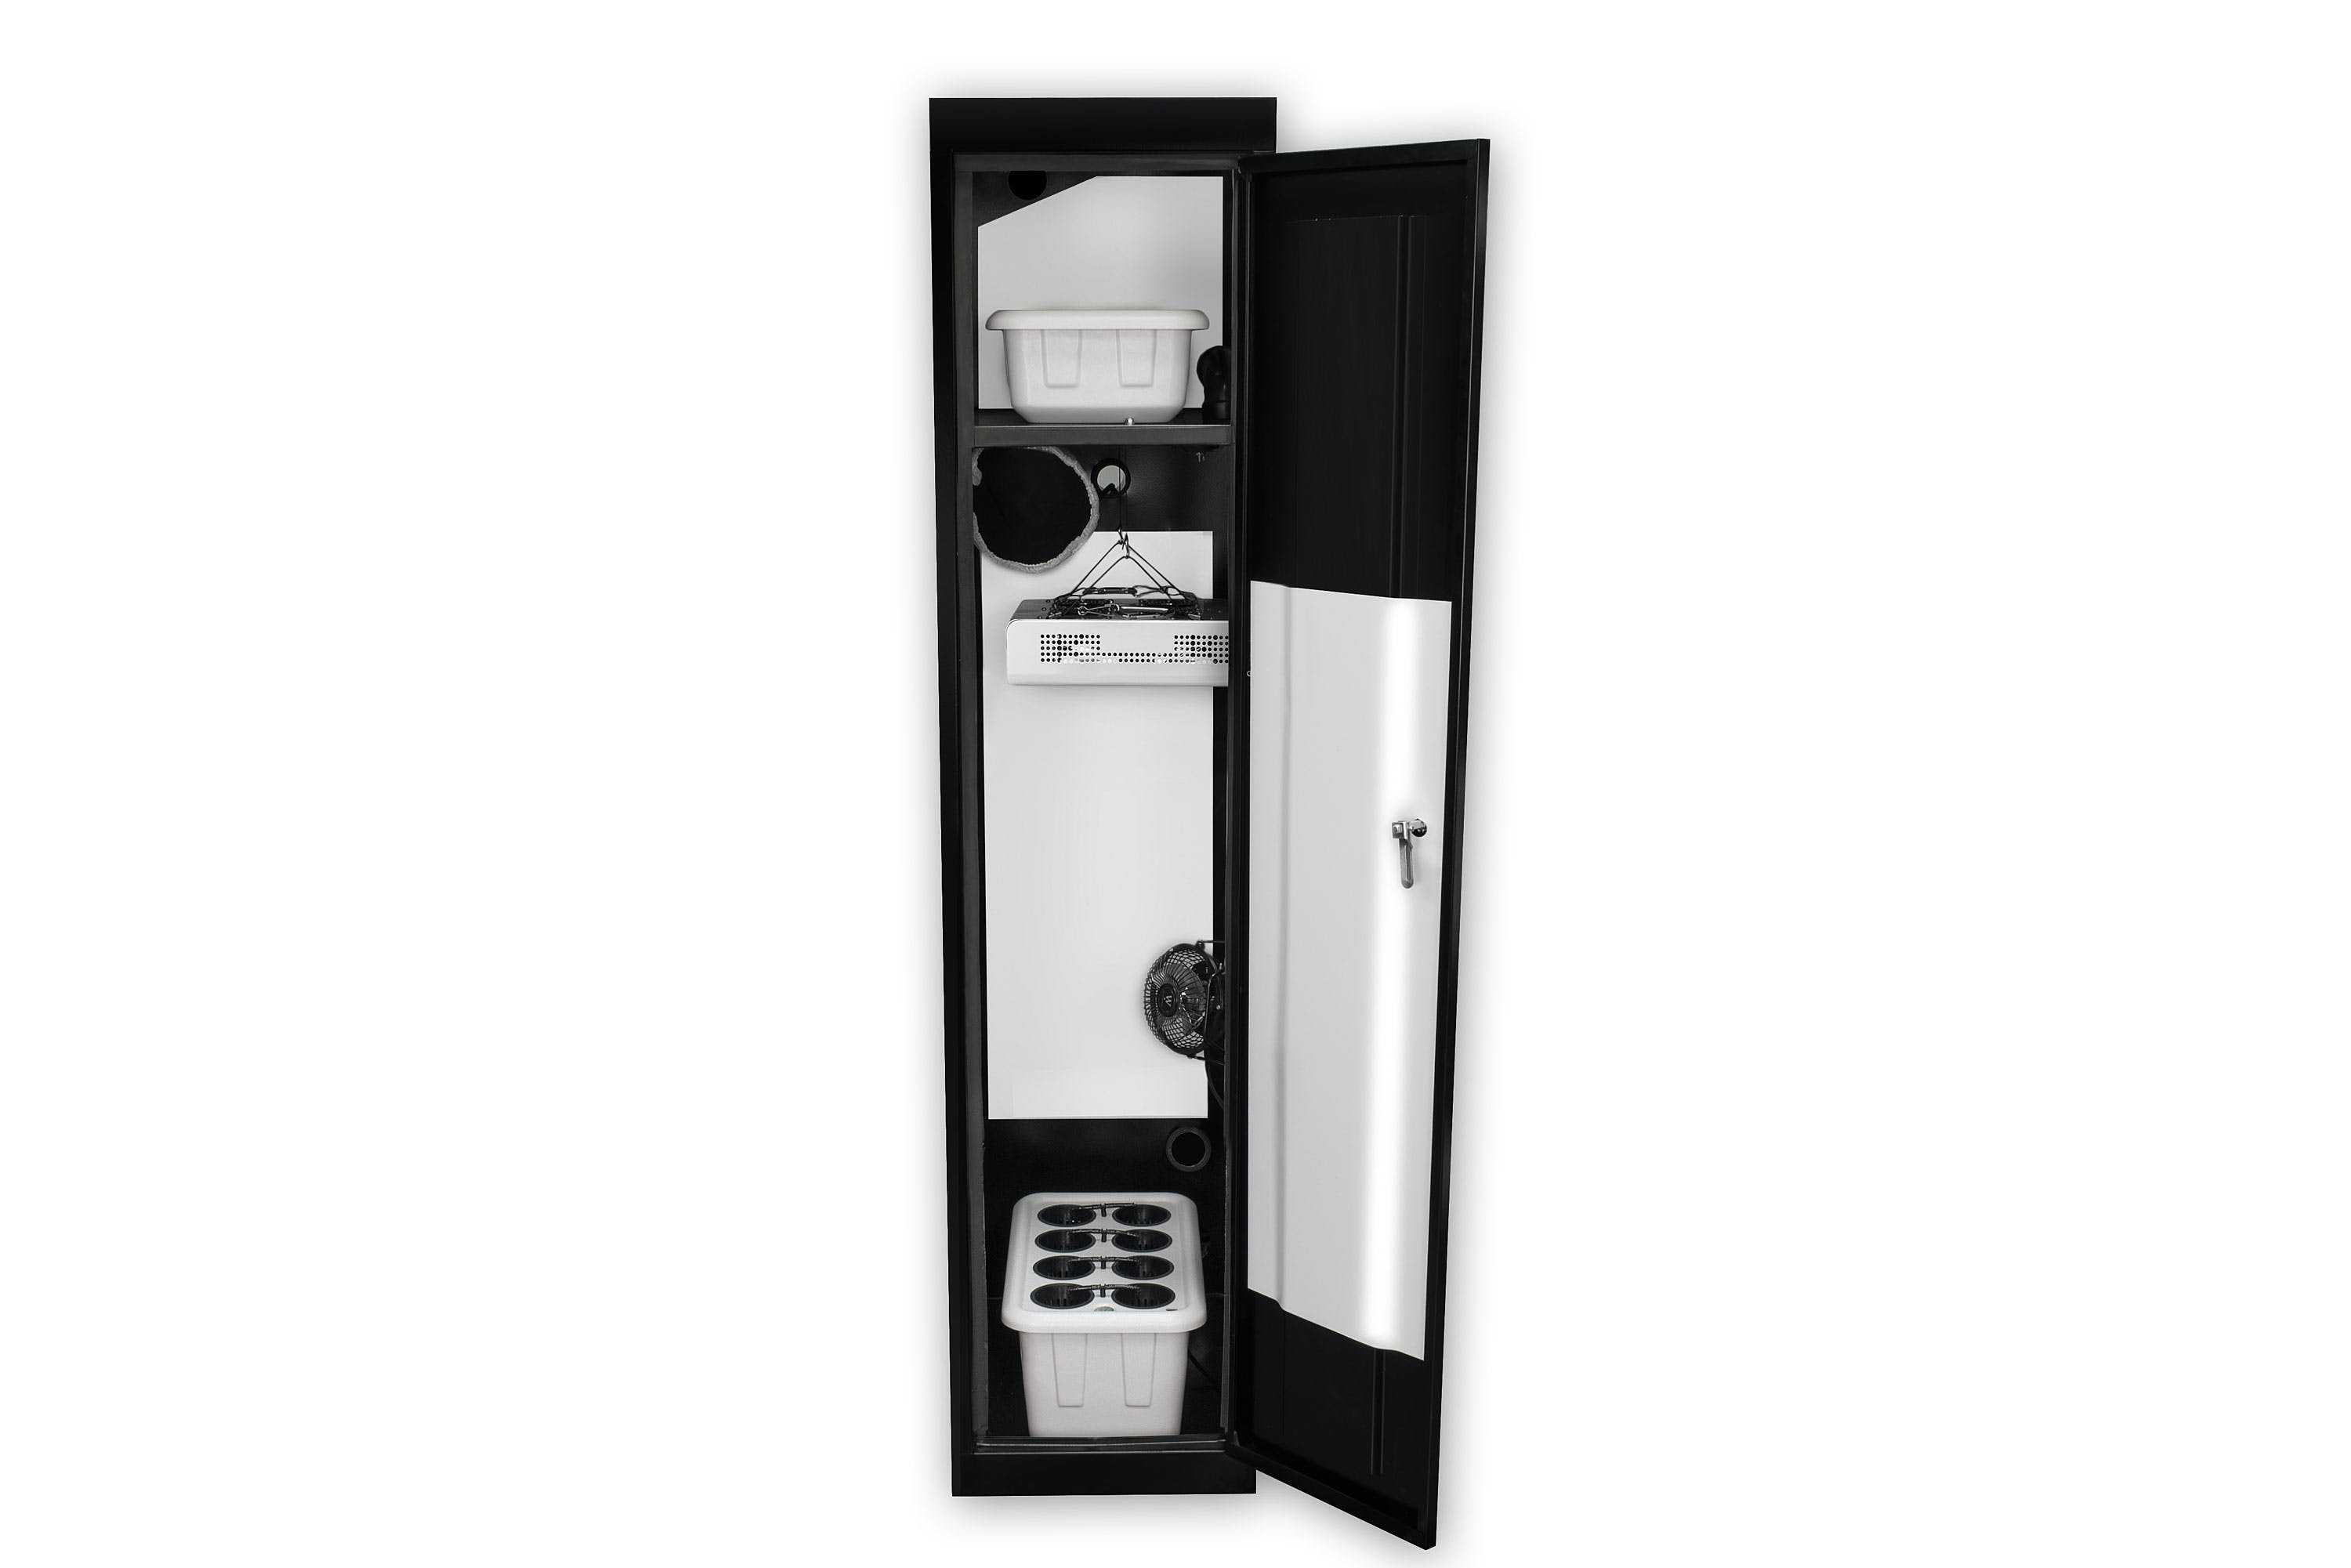 Super Locker Grow Box for Beginners Grow Weed Effortlessly With The Best Grow Box For Beginners